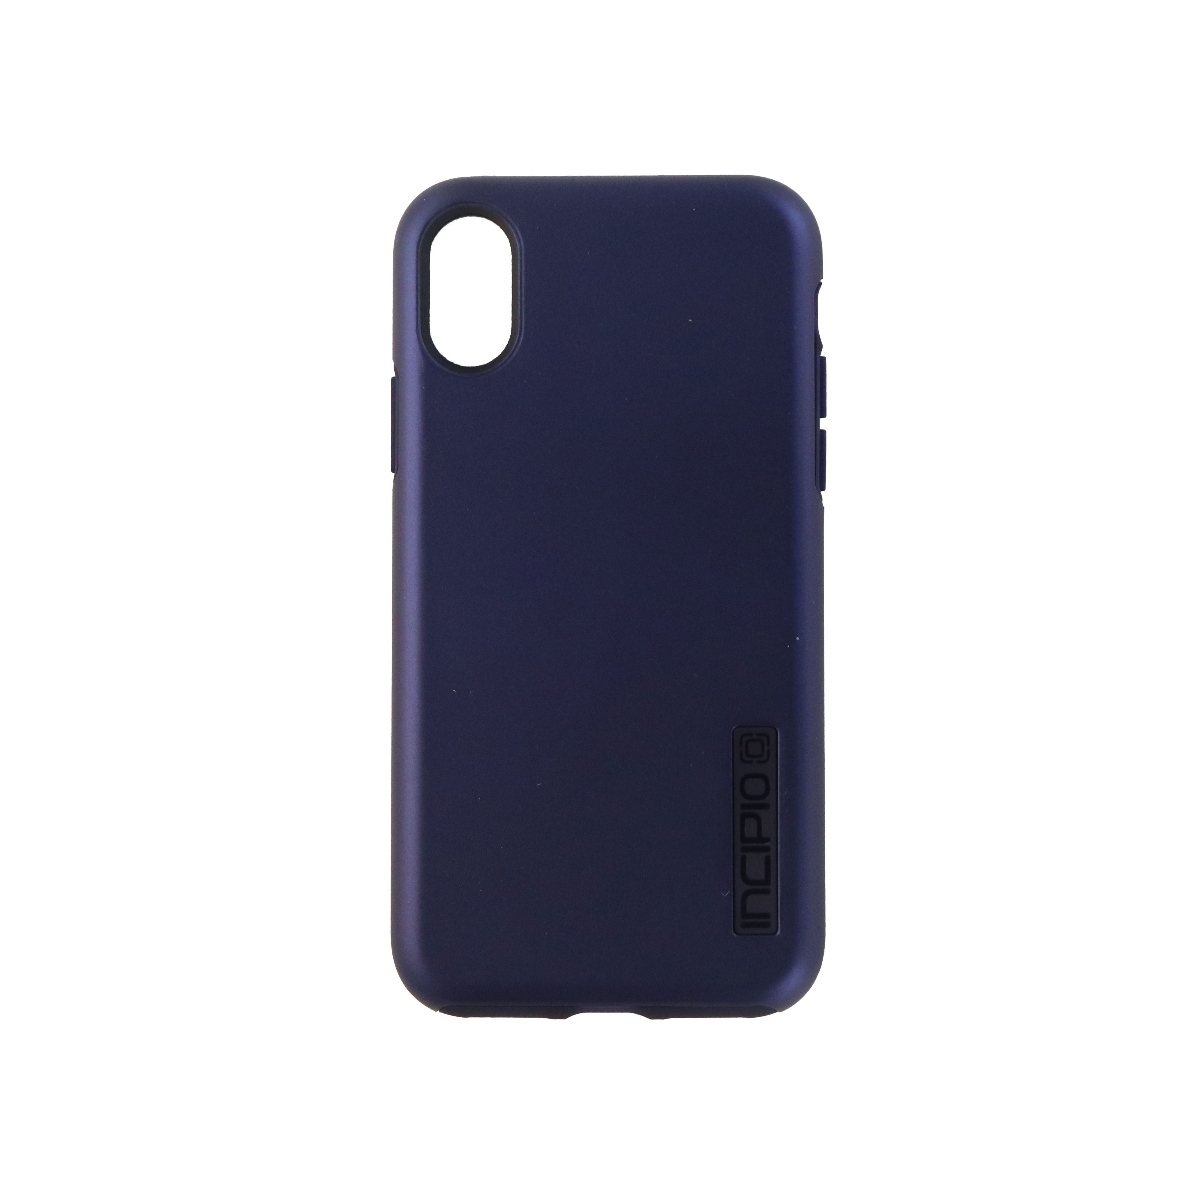 Incipio Dual Pro Dual Layer Protective Case Cover for iPhone X 10 - Navy Blue